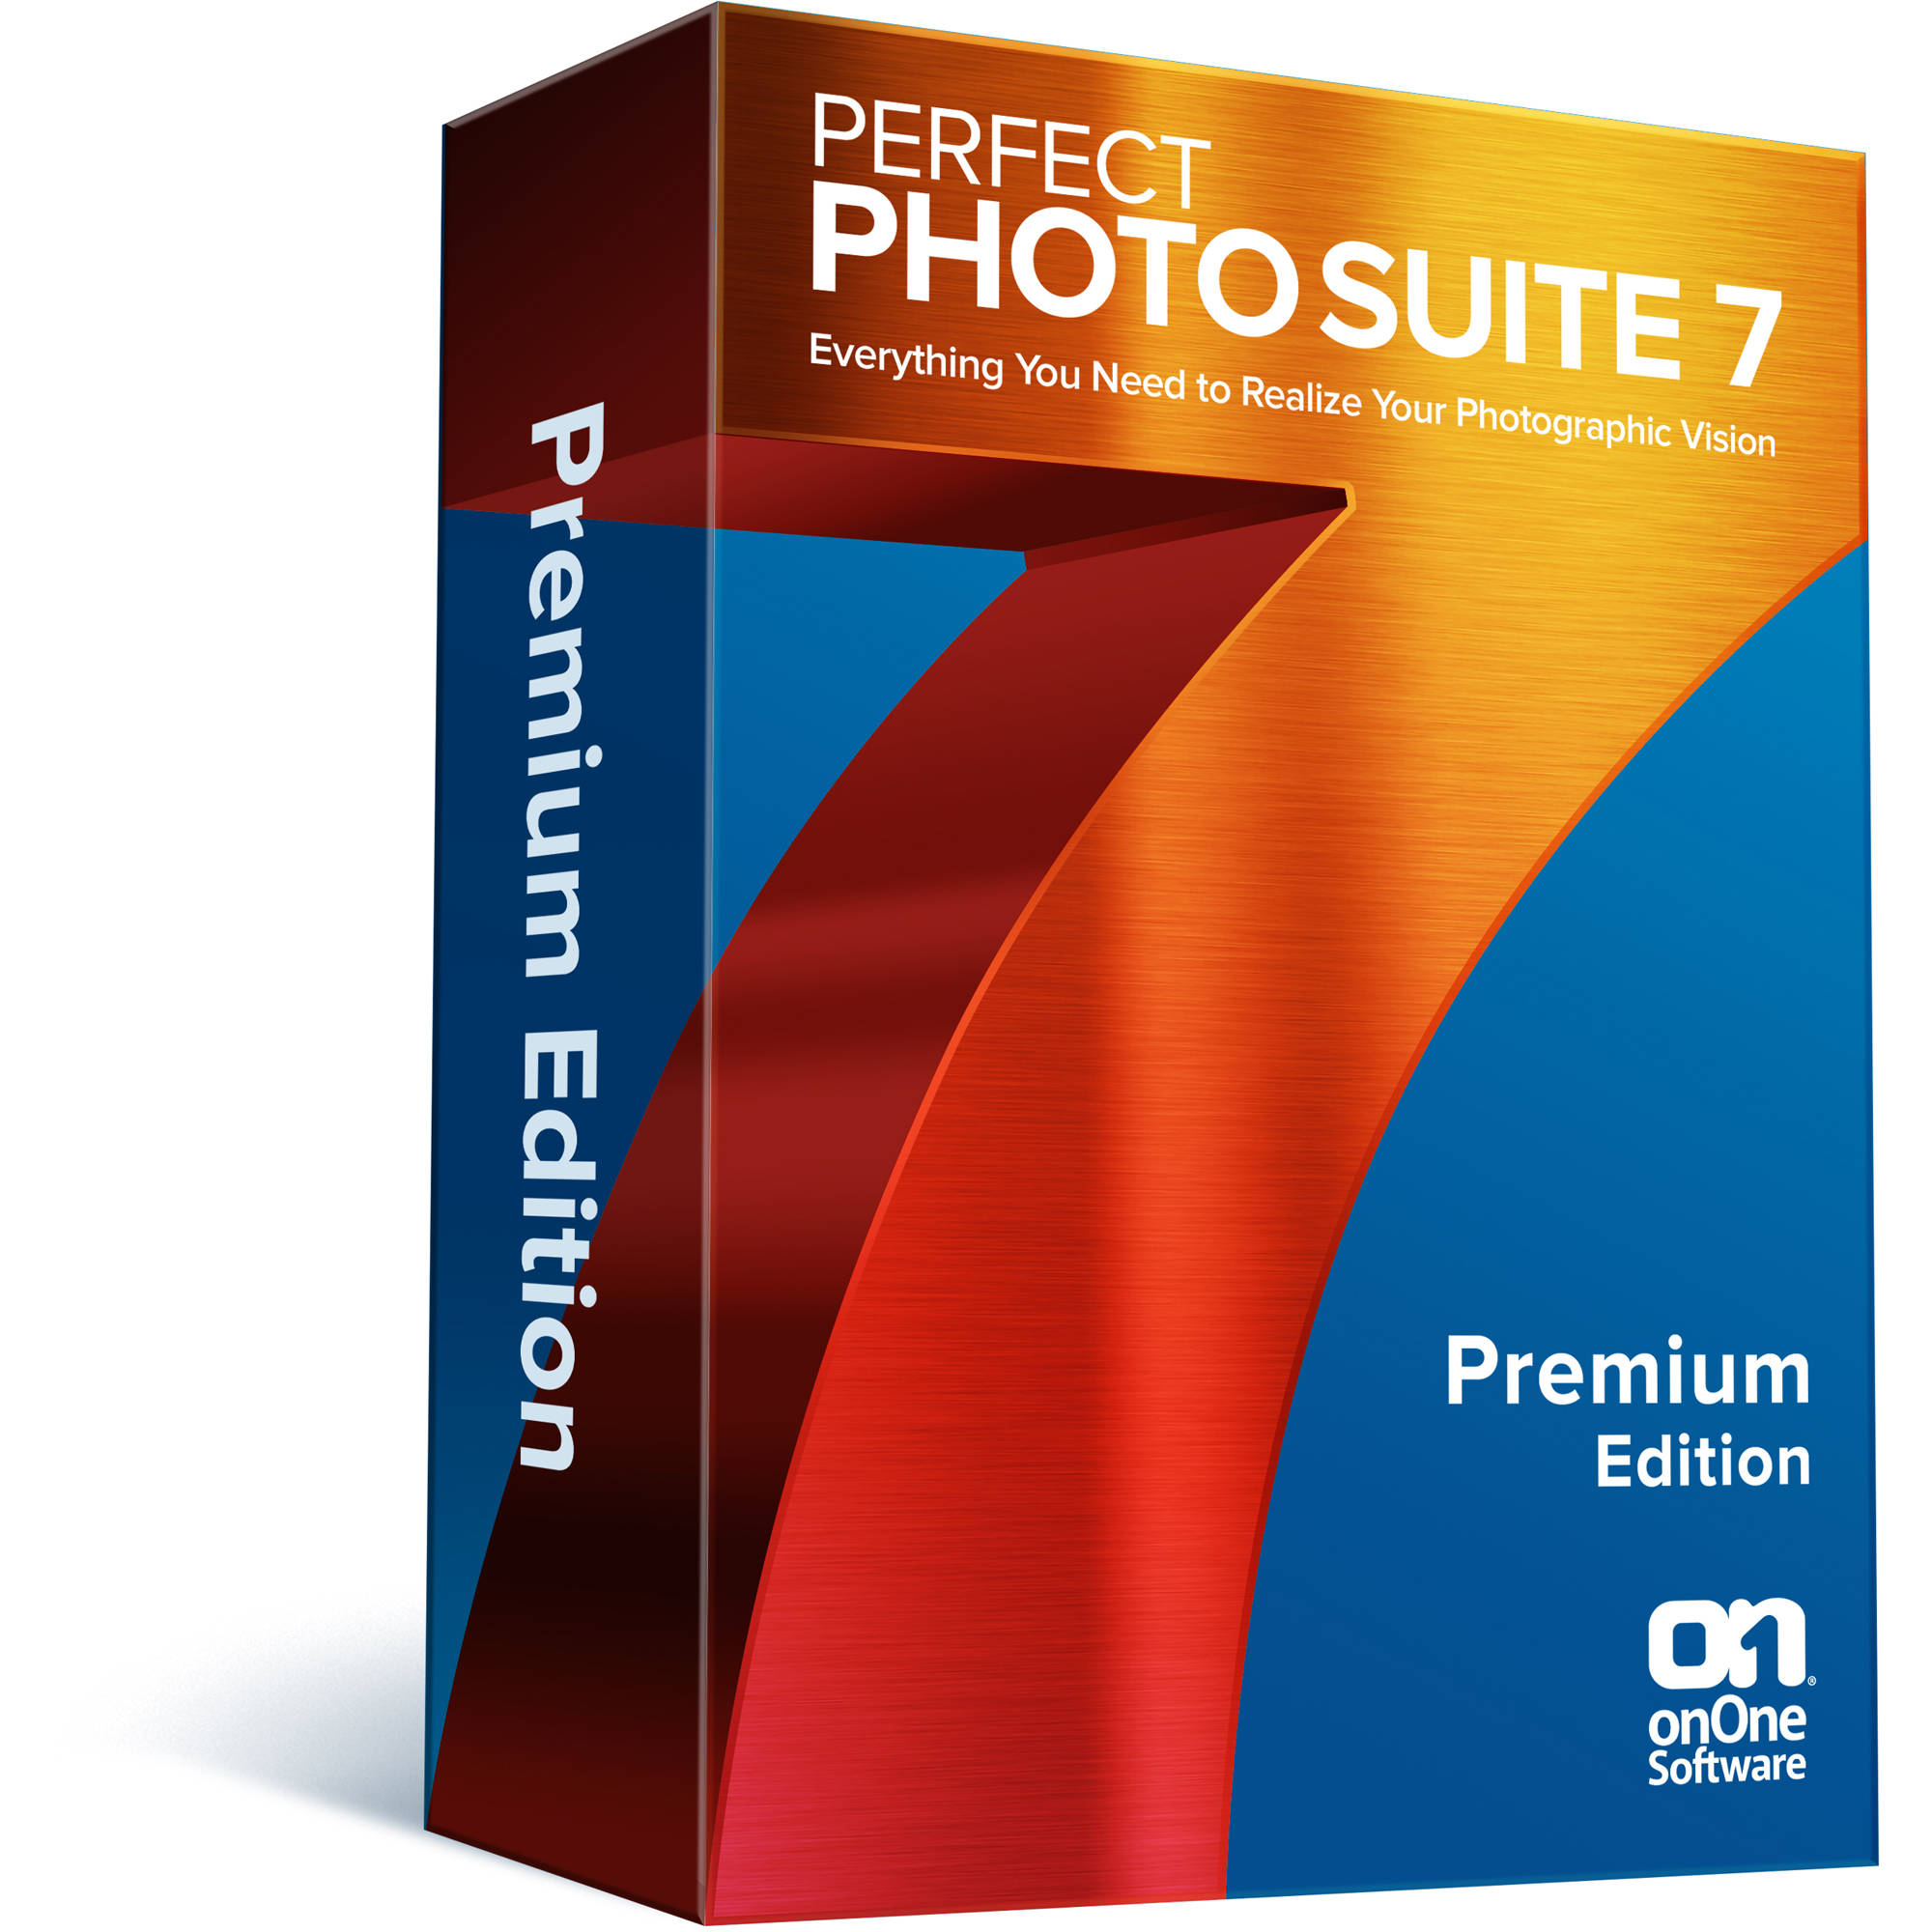 Perfect photo suite 8 download